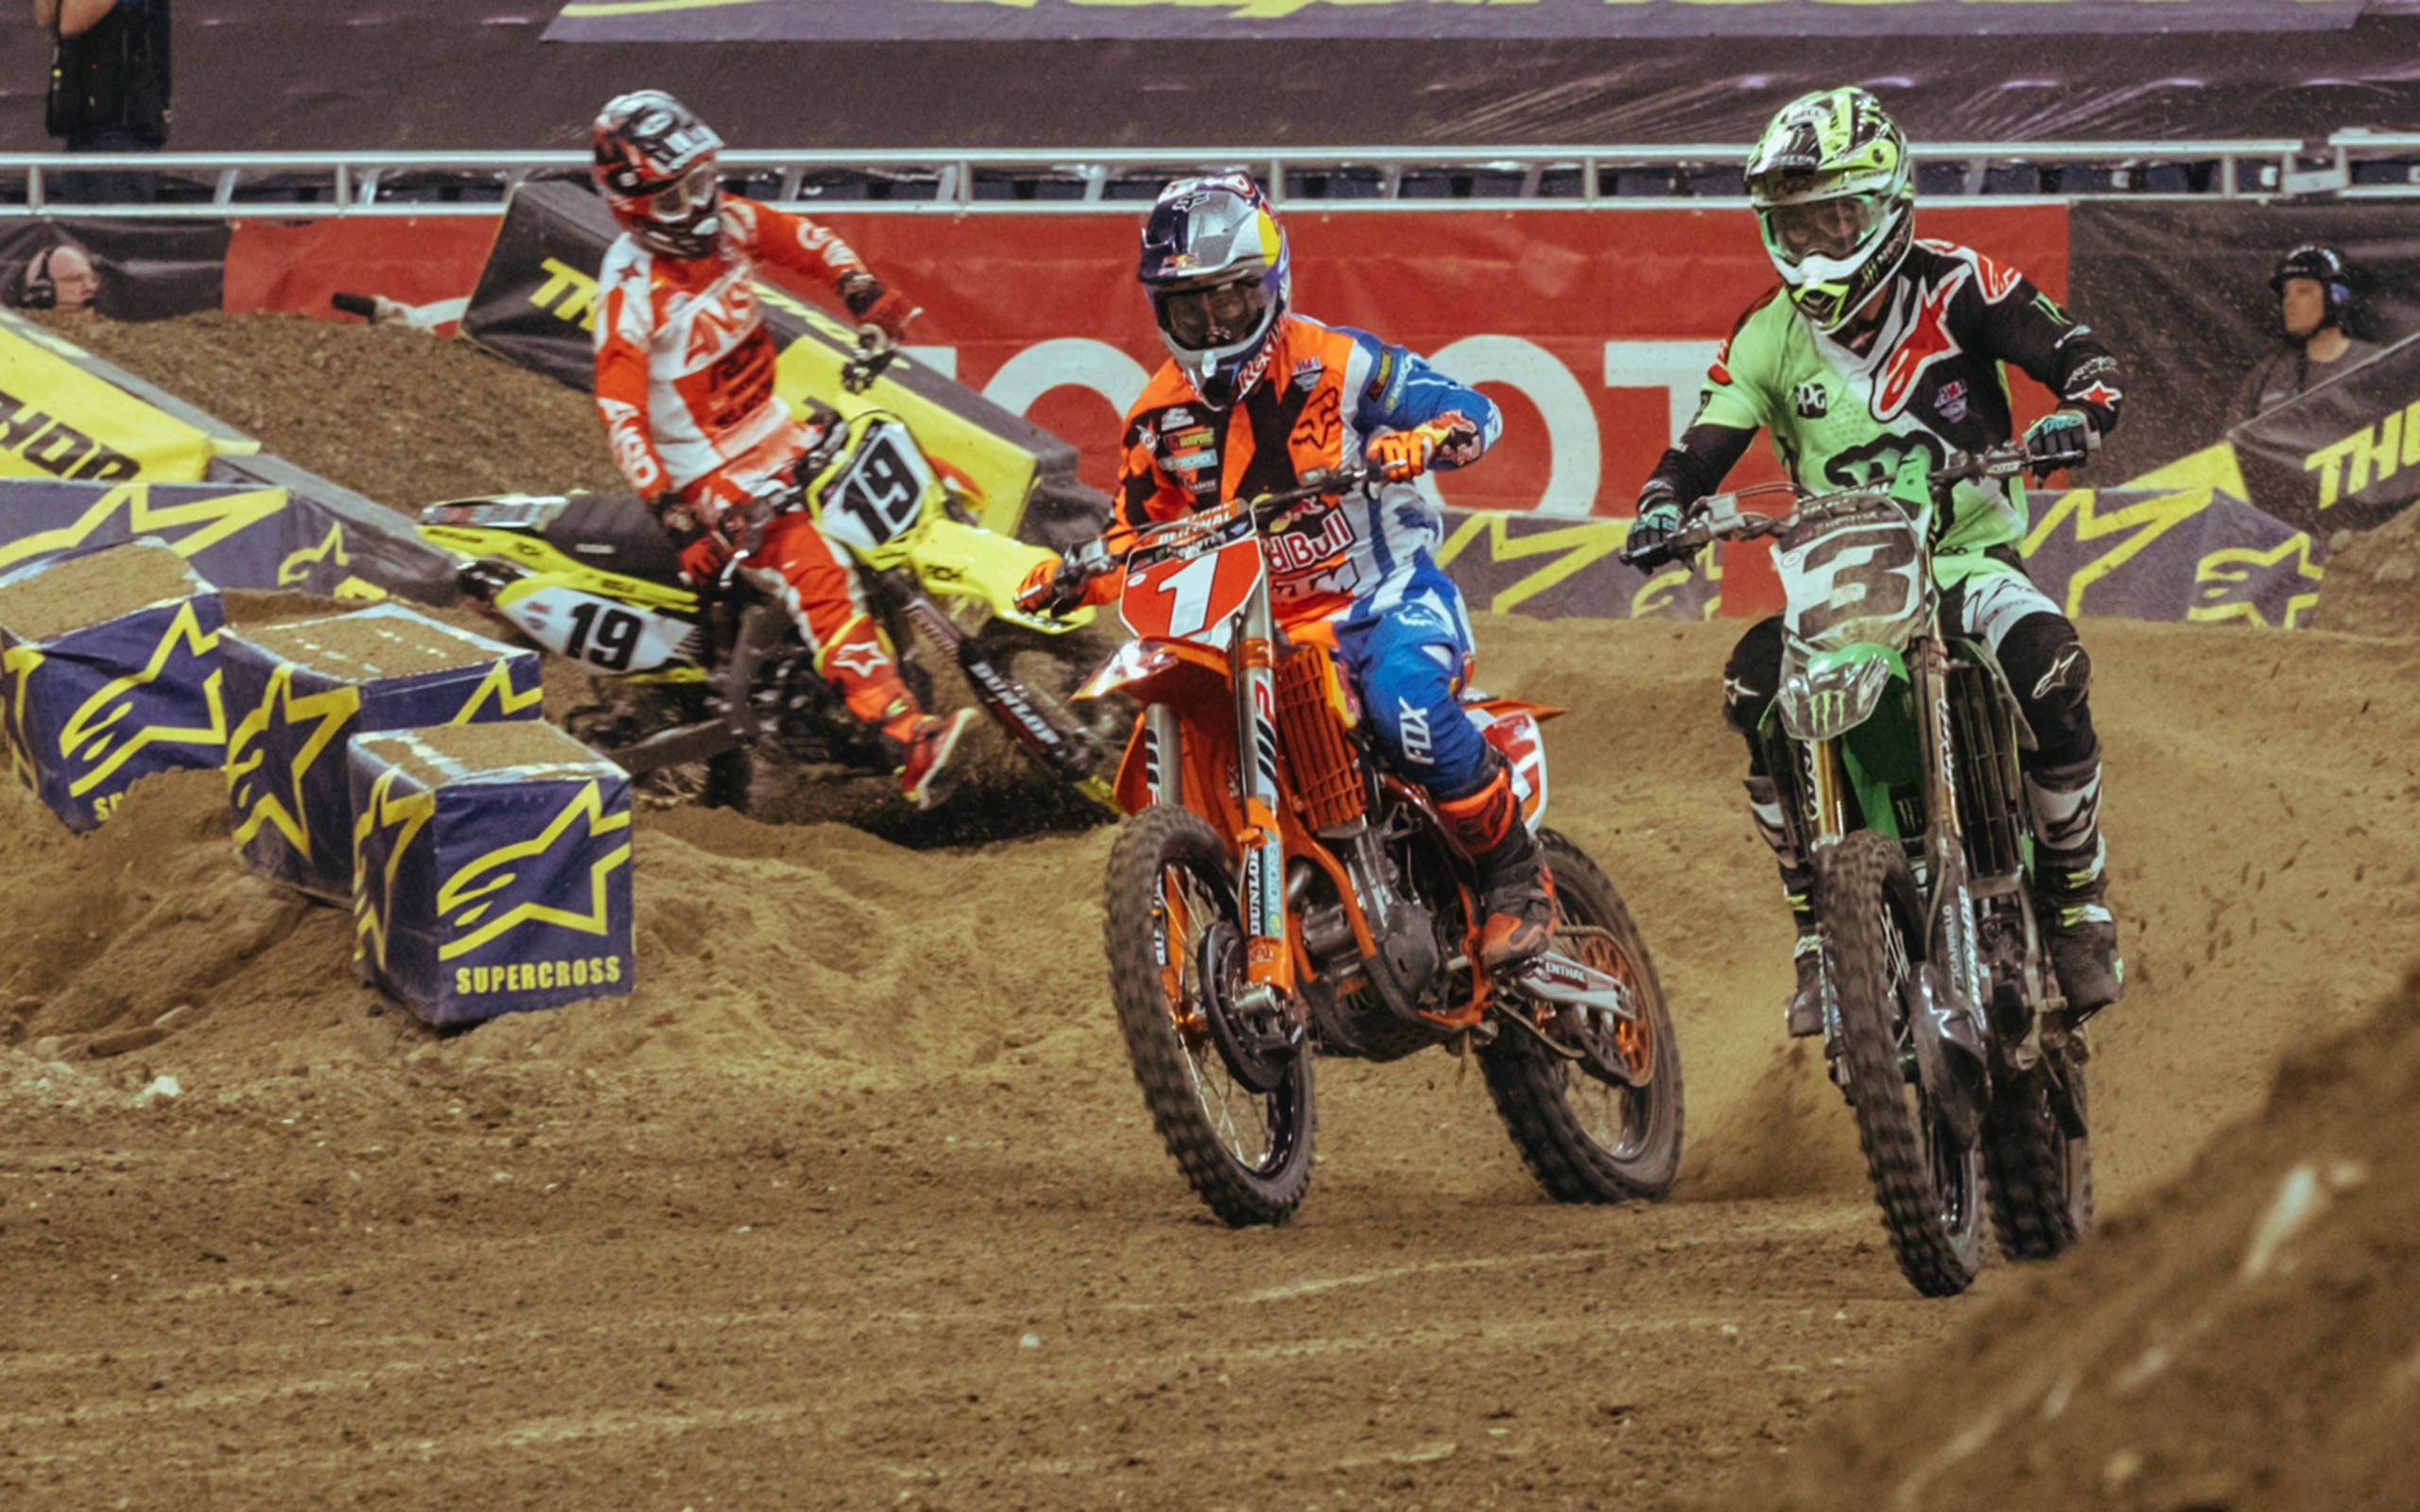 2018 Monster Energy Supercross Schedule Revealed See Who S In And Who S Out